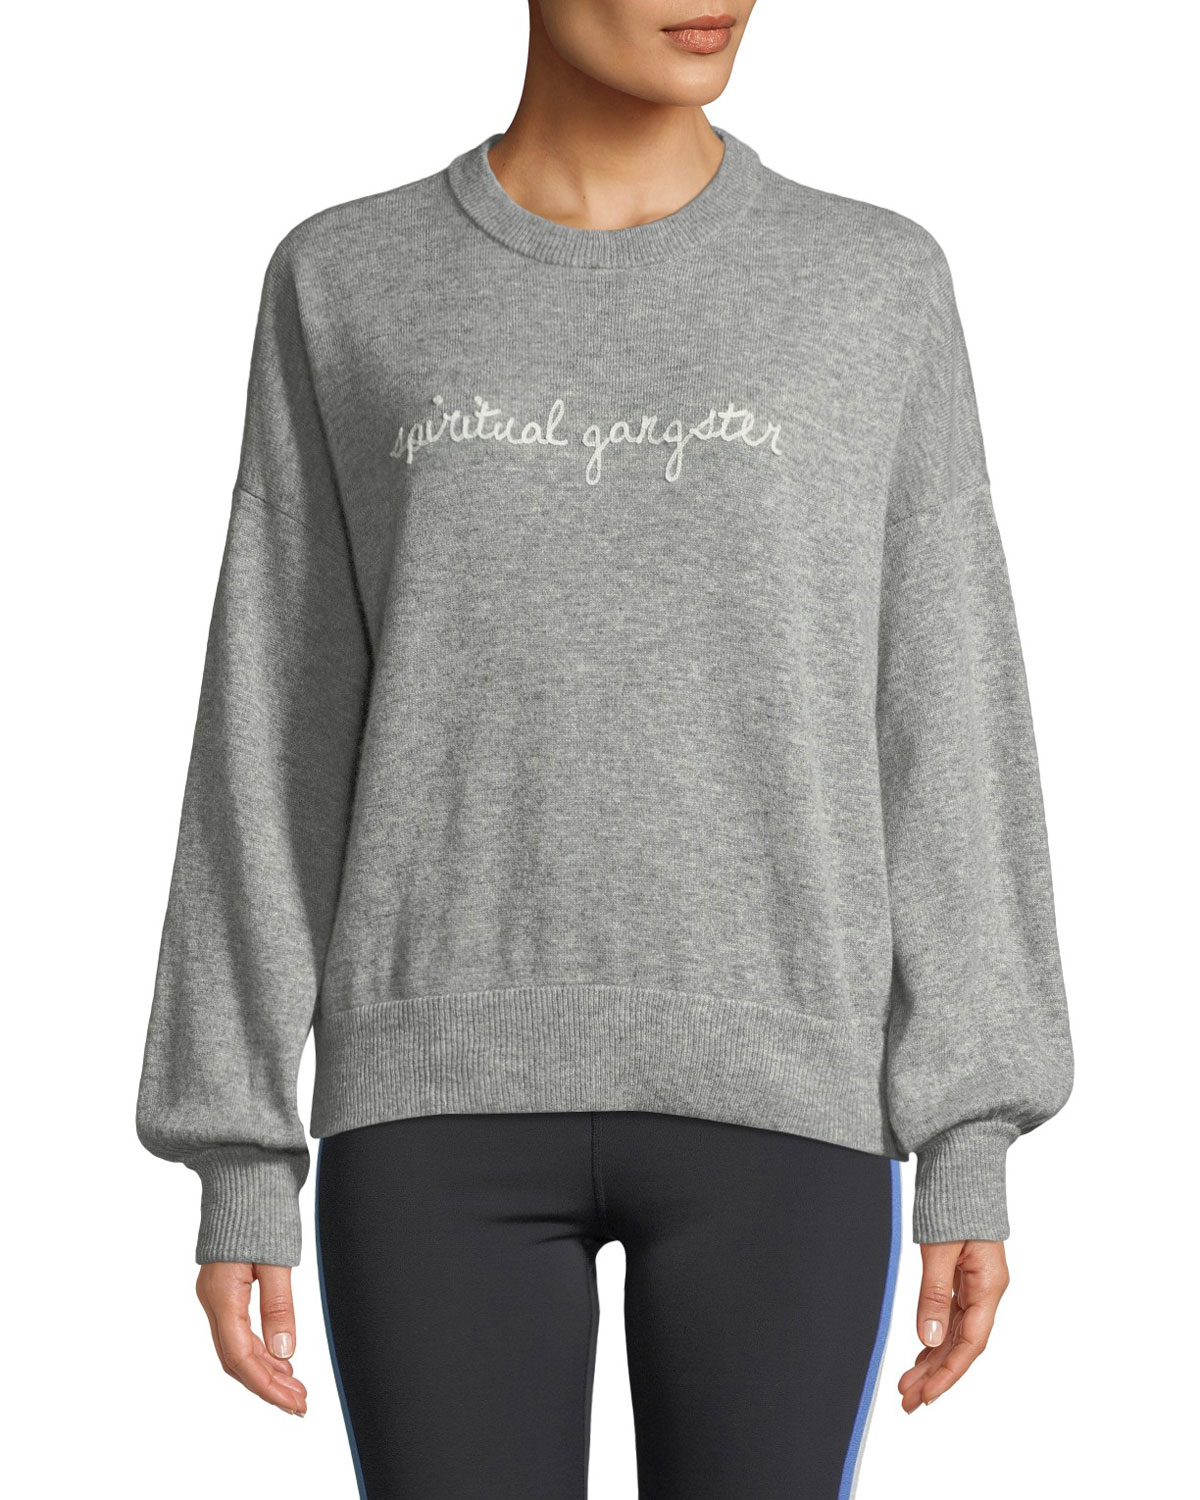 Signature Embroidered Balloon-Sleeve Sweater, Gray